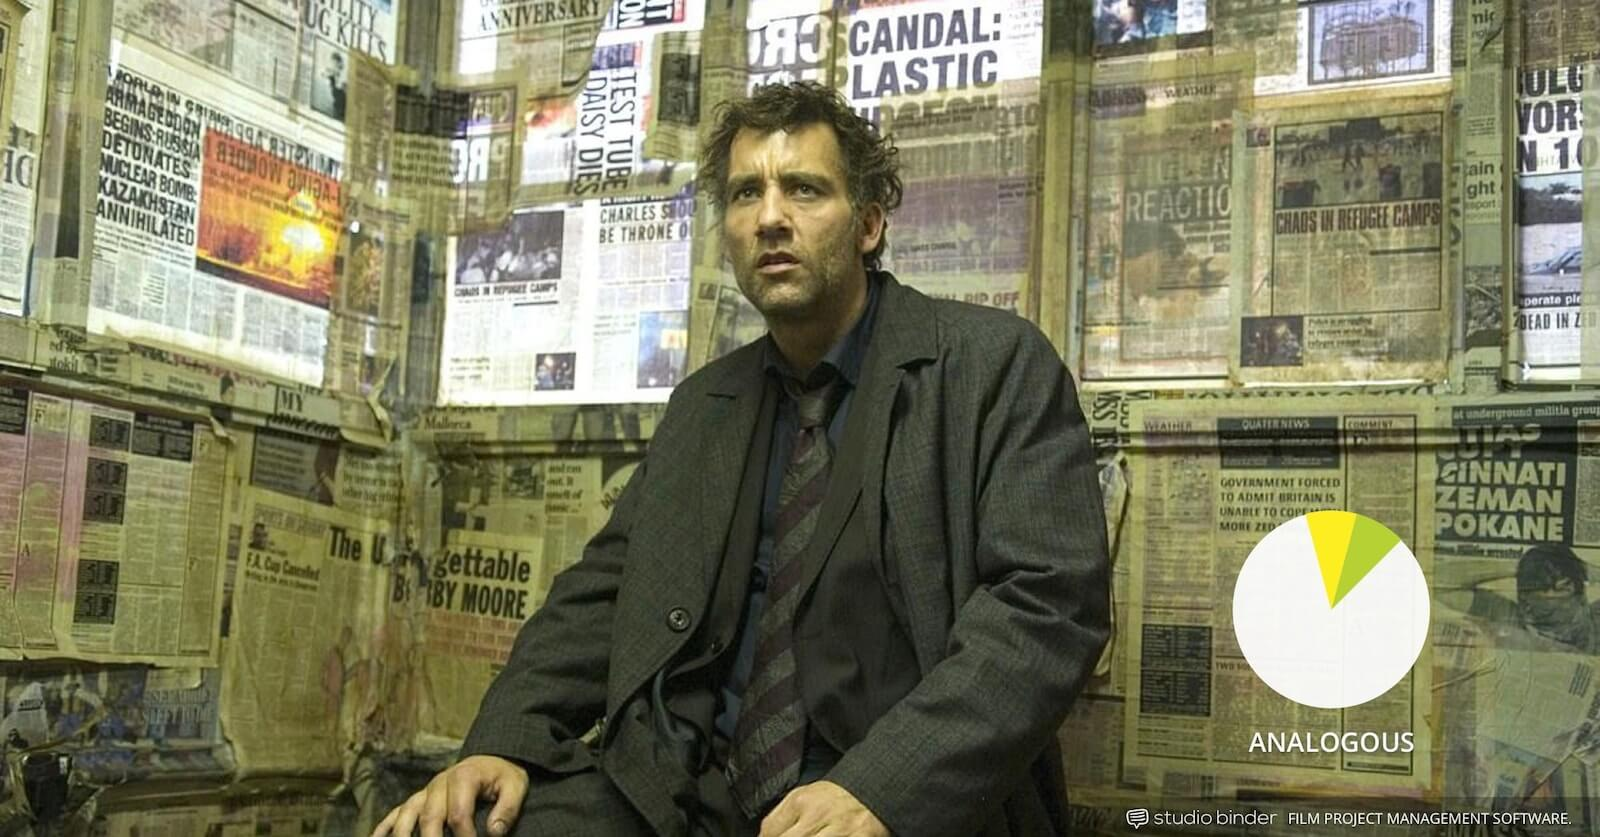 How to Use Color in Film - Example of Movie Color Palette and Schemes - Analogous - Children of Men1-min